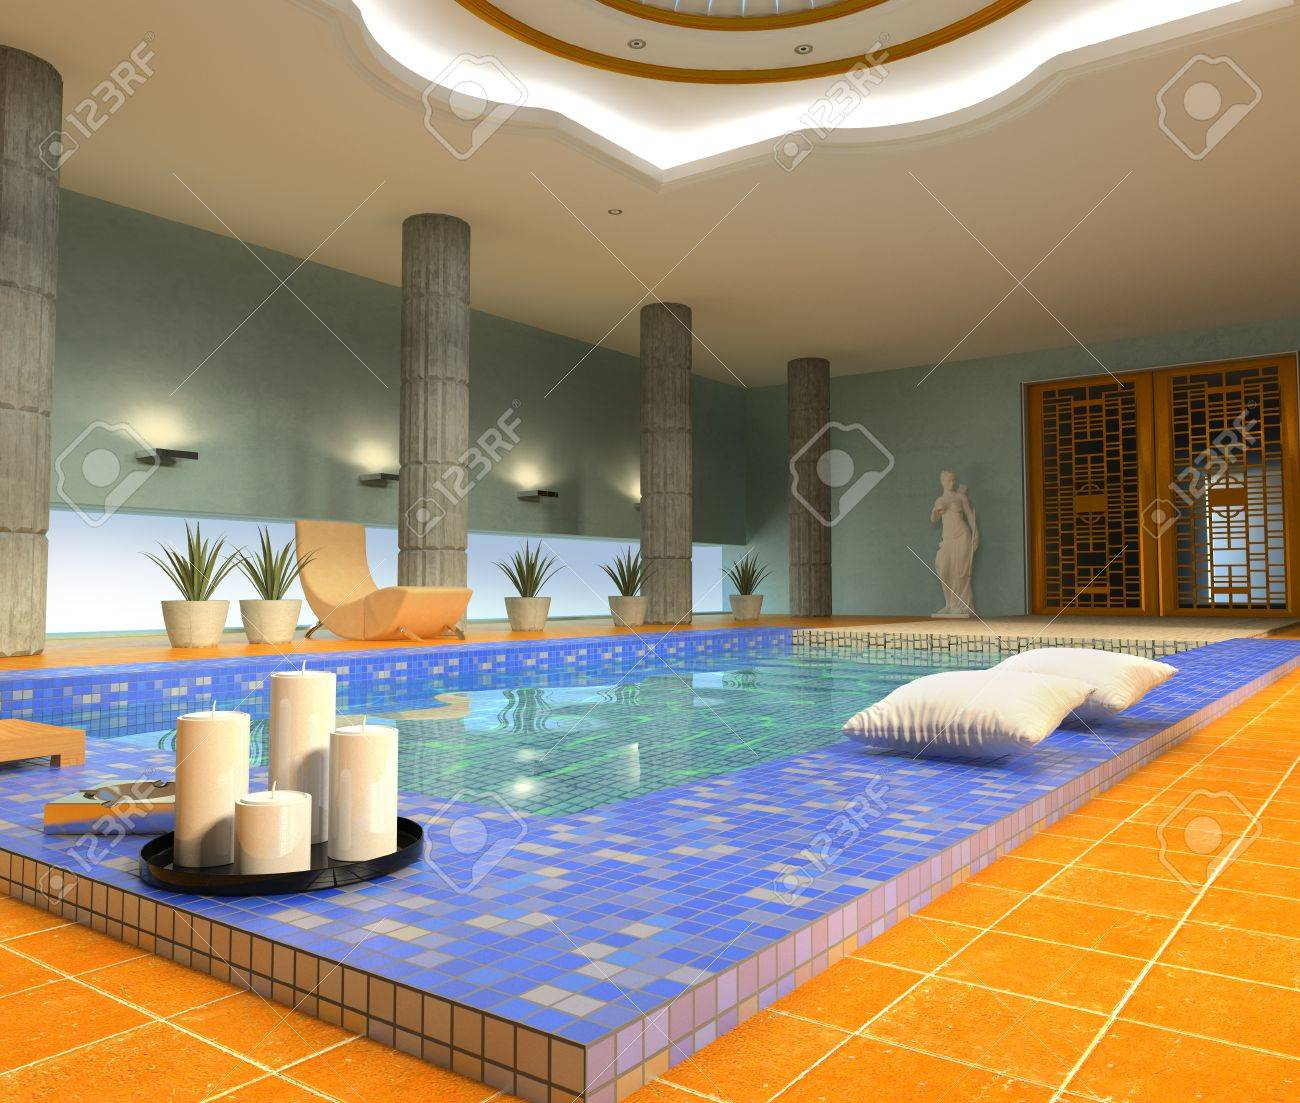 Modern Luxury Spa Interior 3d Rendering Stock Photo Picture And